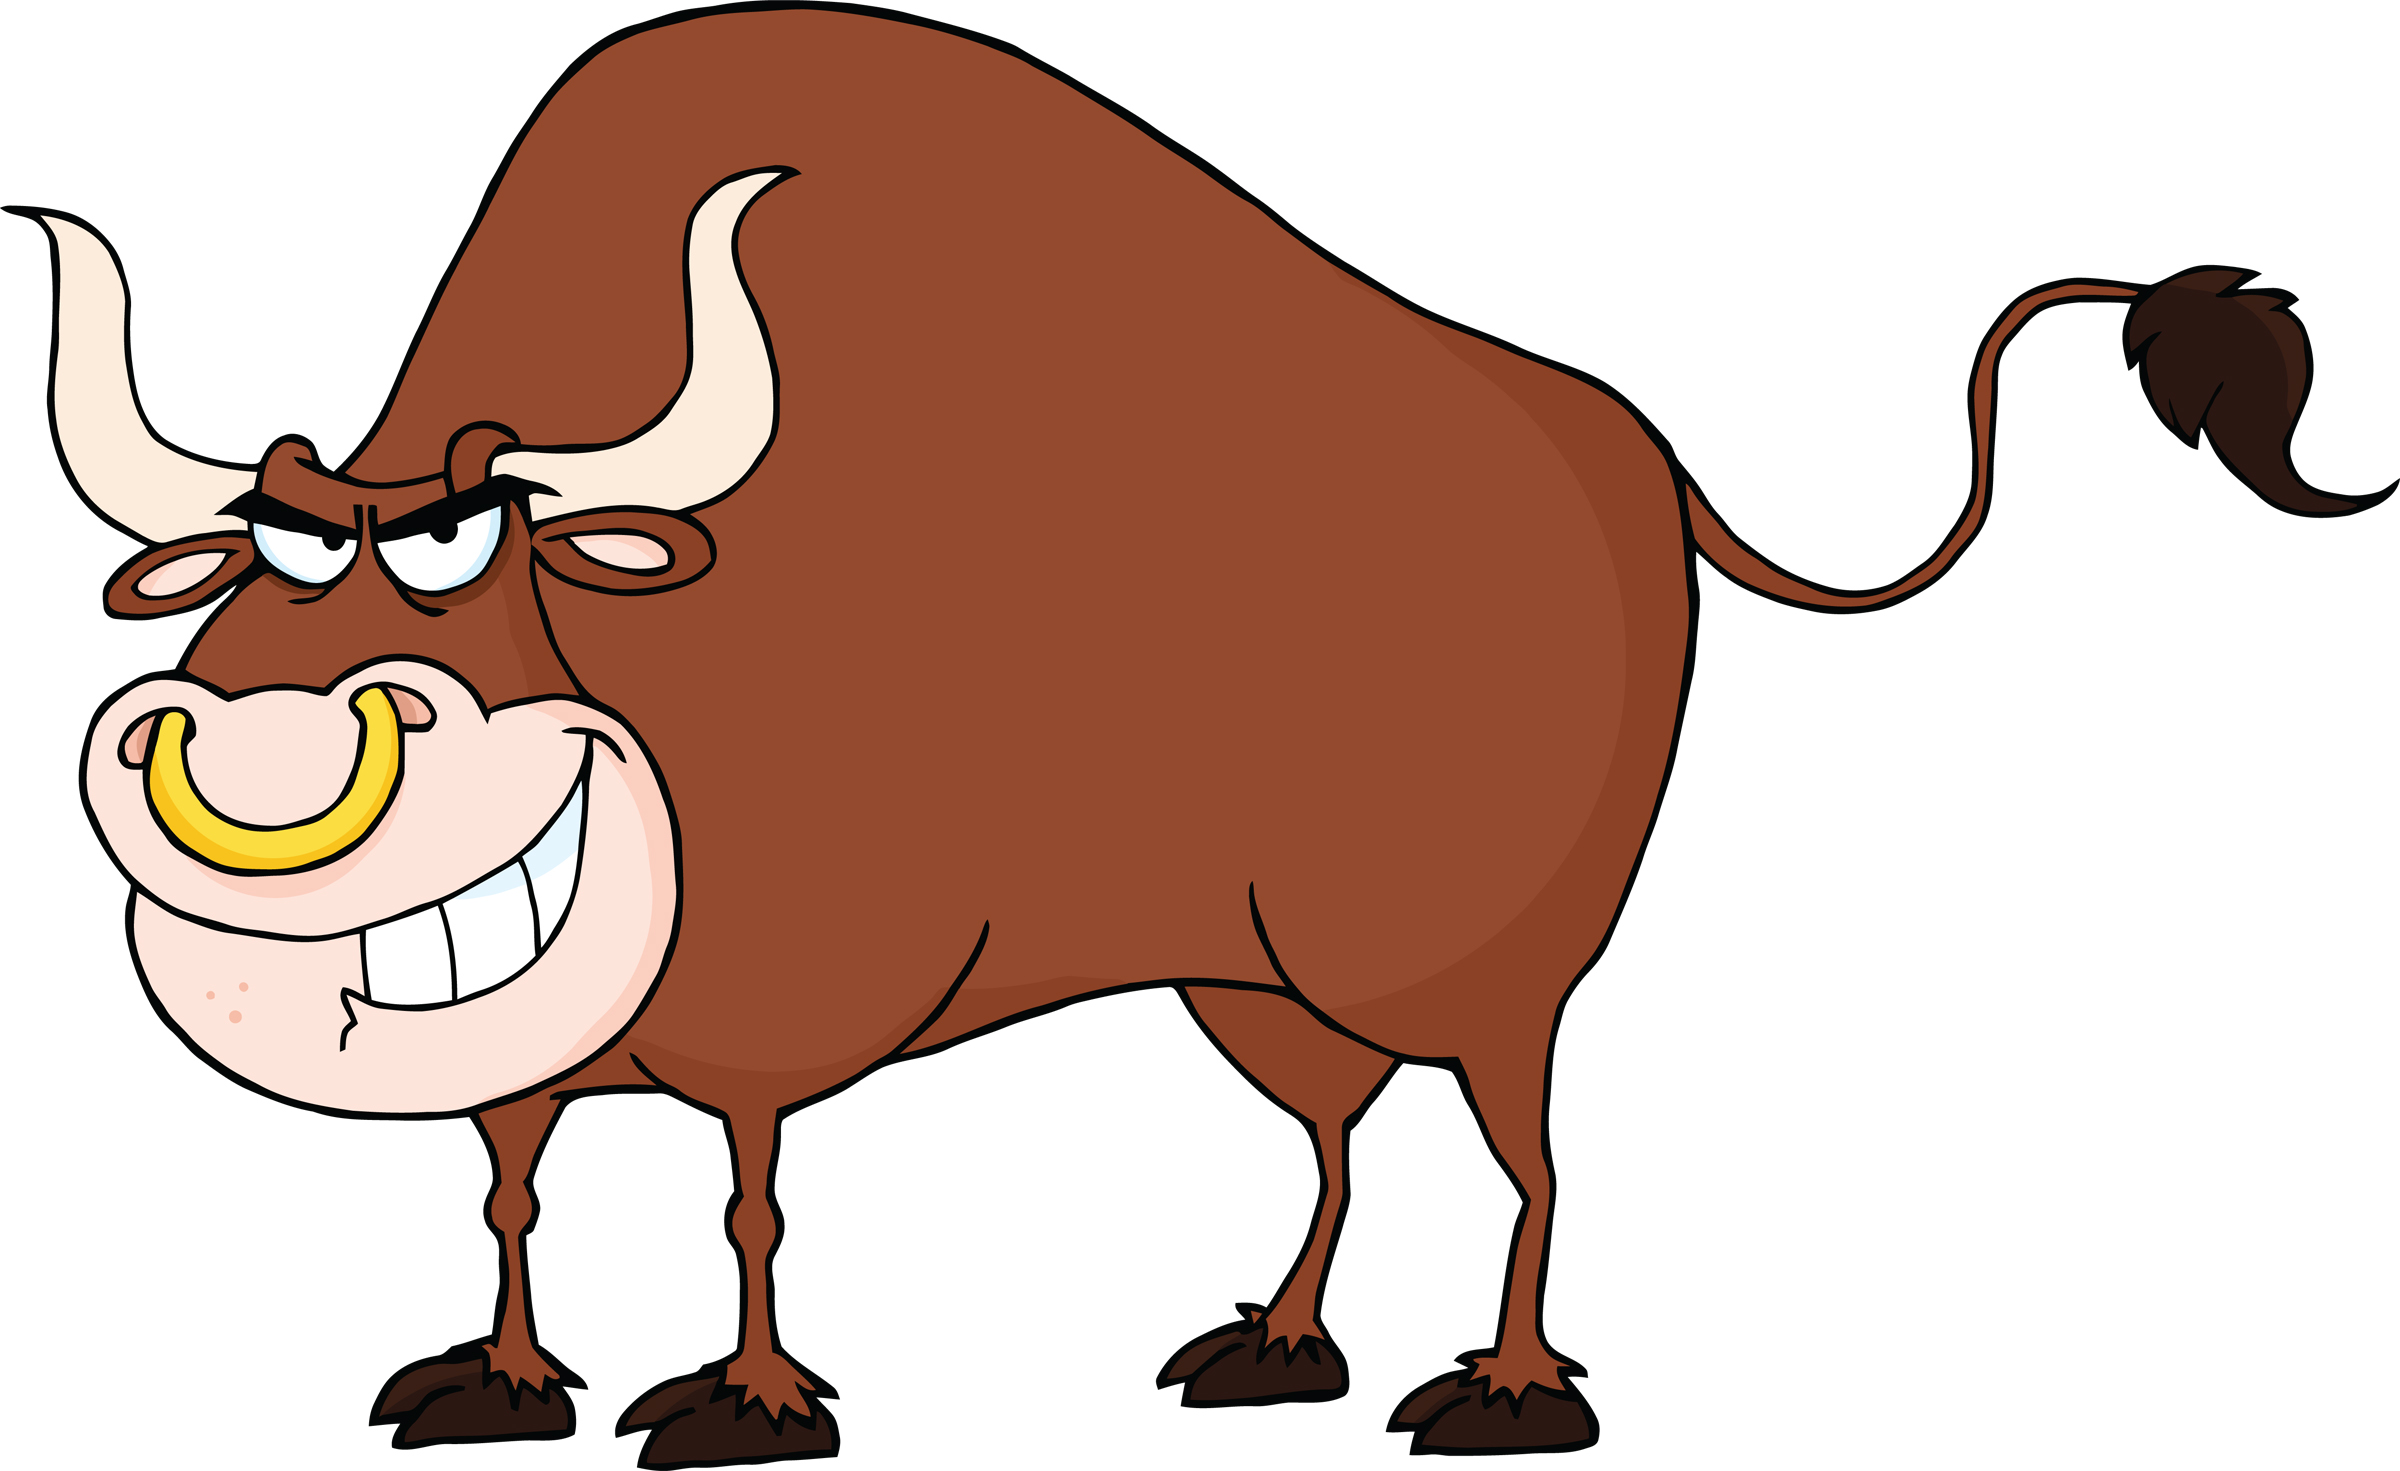 Todd Clipart 20 Fee Cliparts Download Imagenes: Bull Clipart 20 Free Cliparts